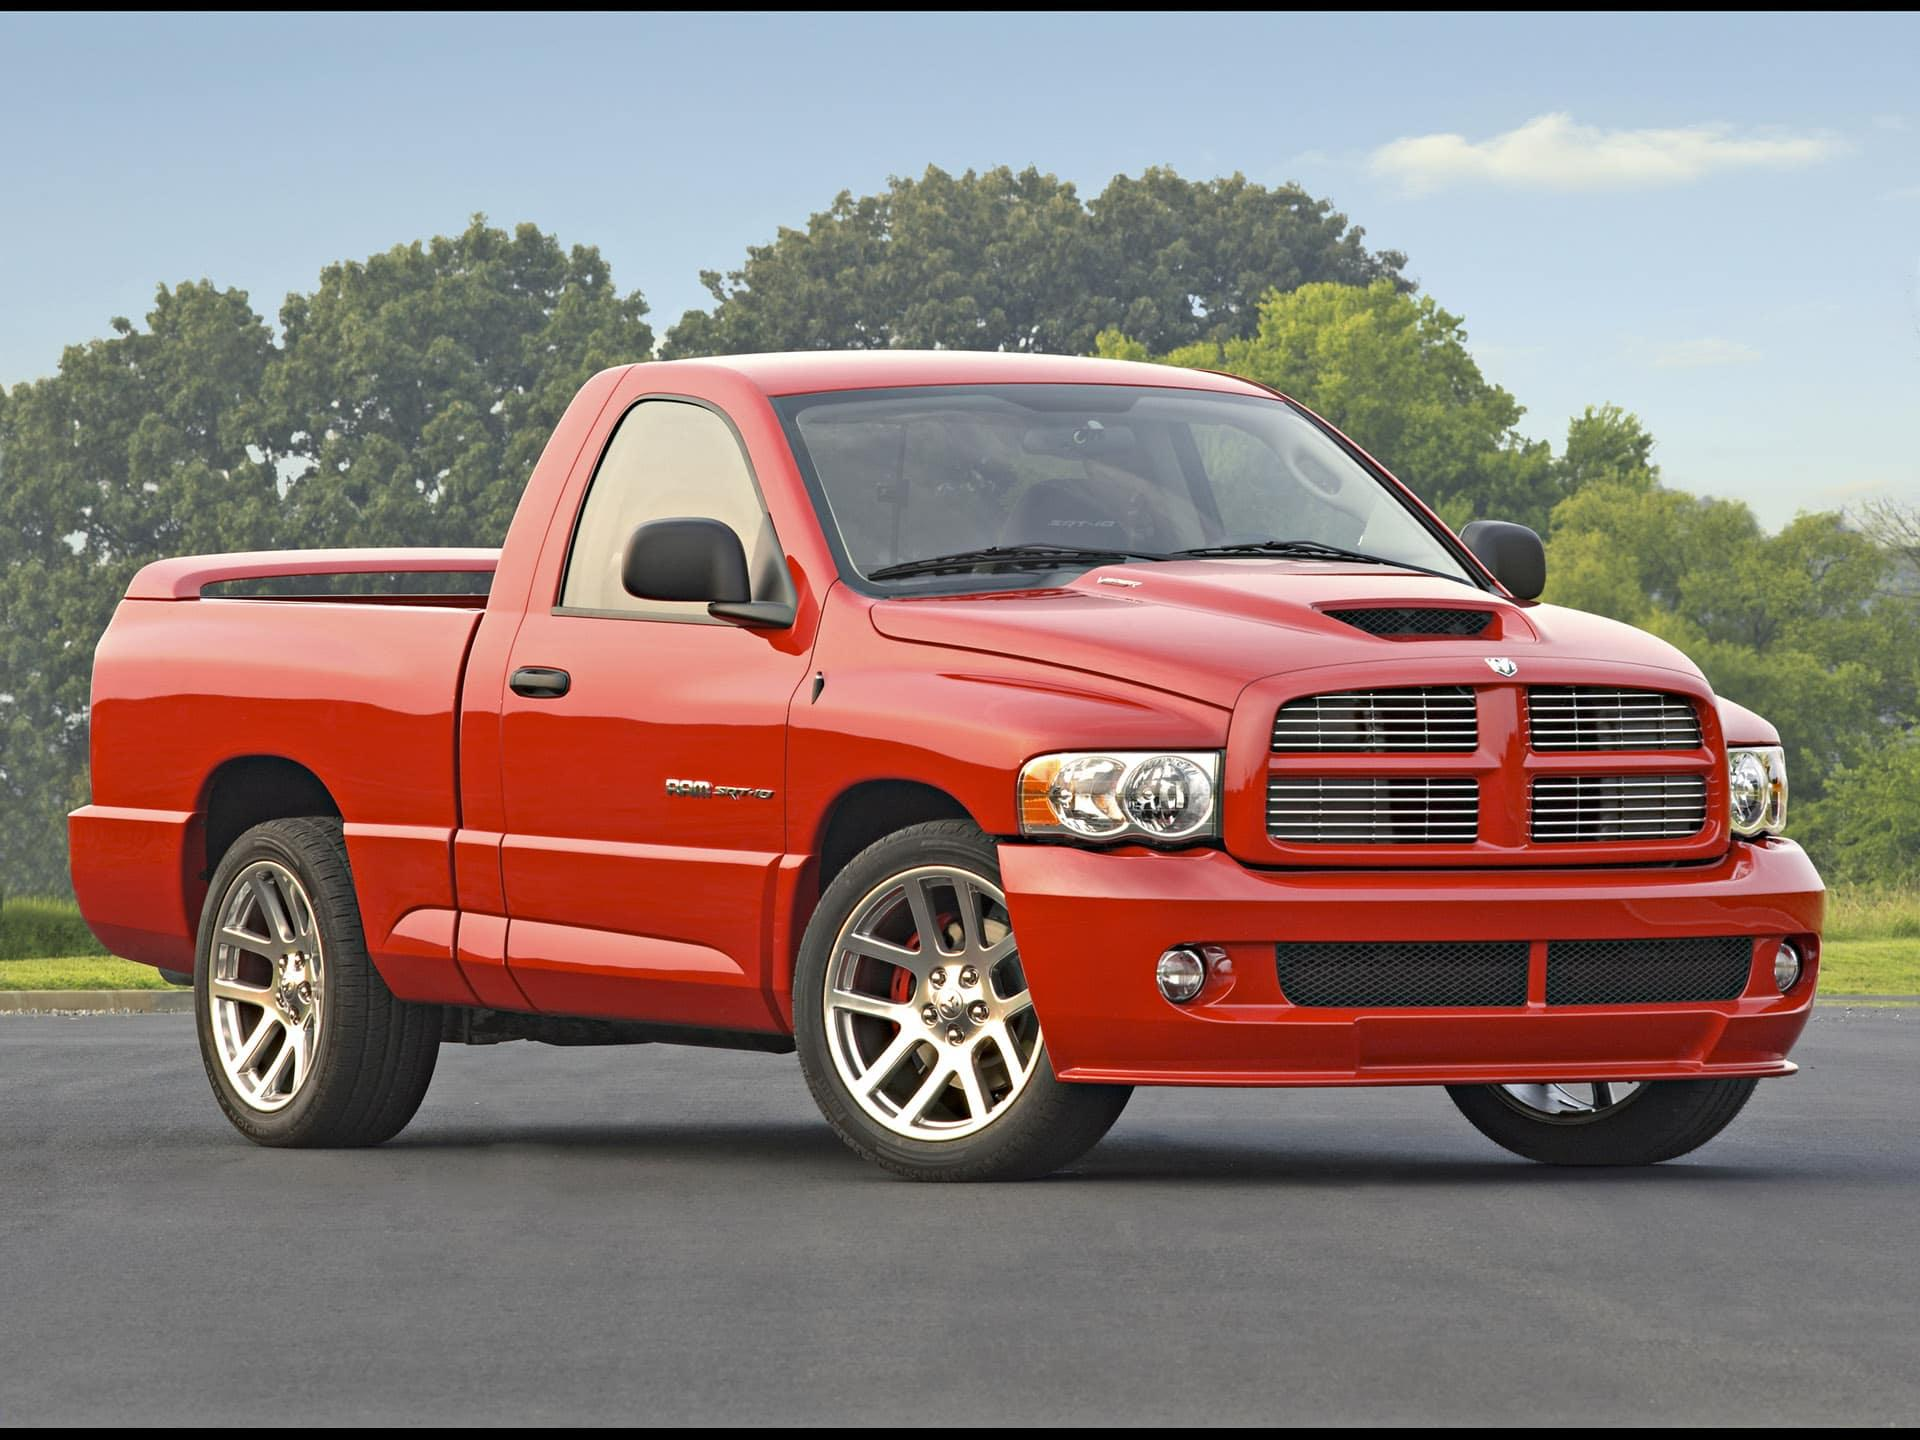 The Dodge Ram SRT 10 from 2004-2006 is the most powerful truck on the road